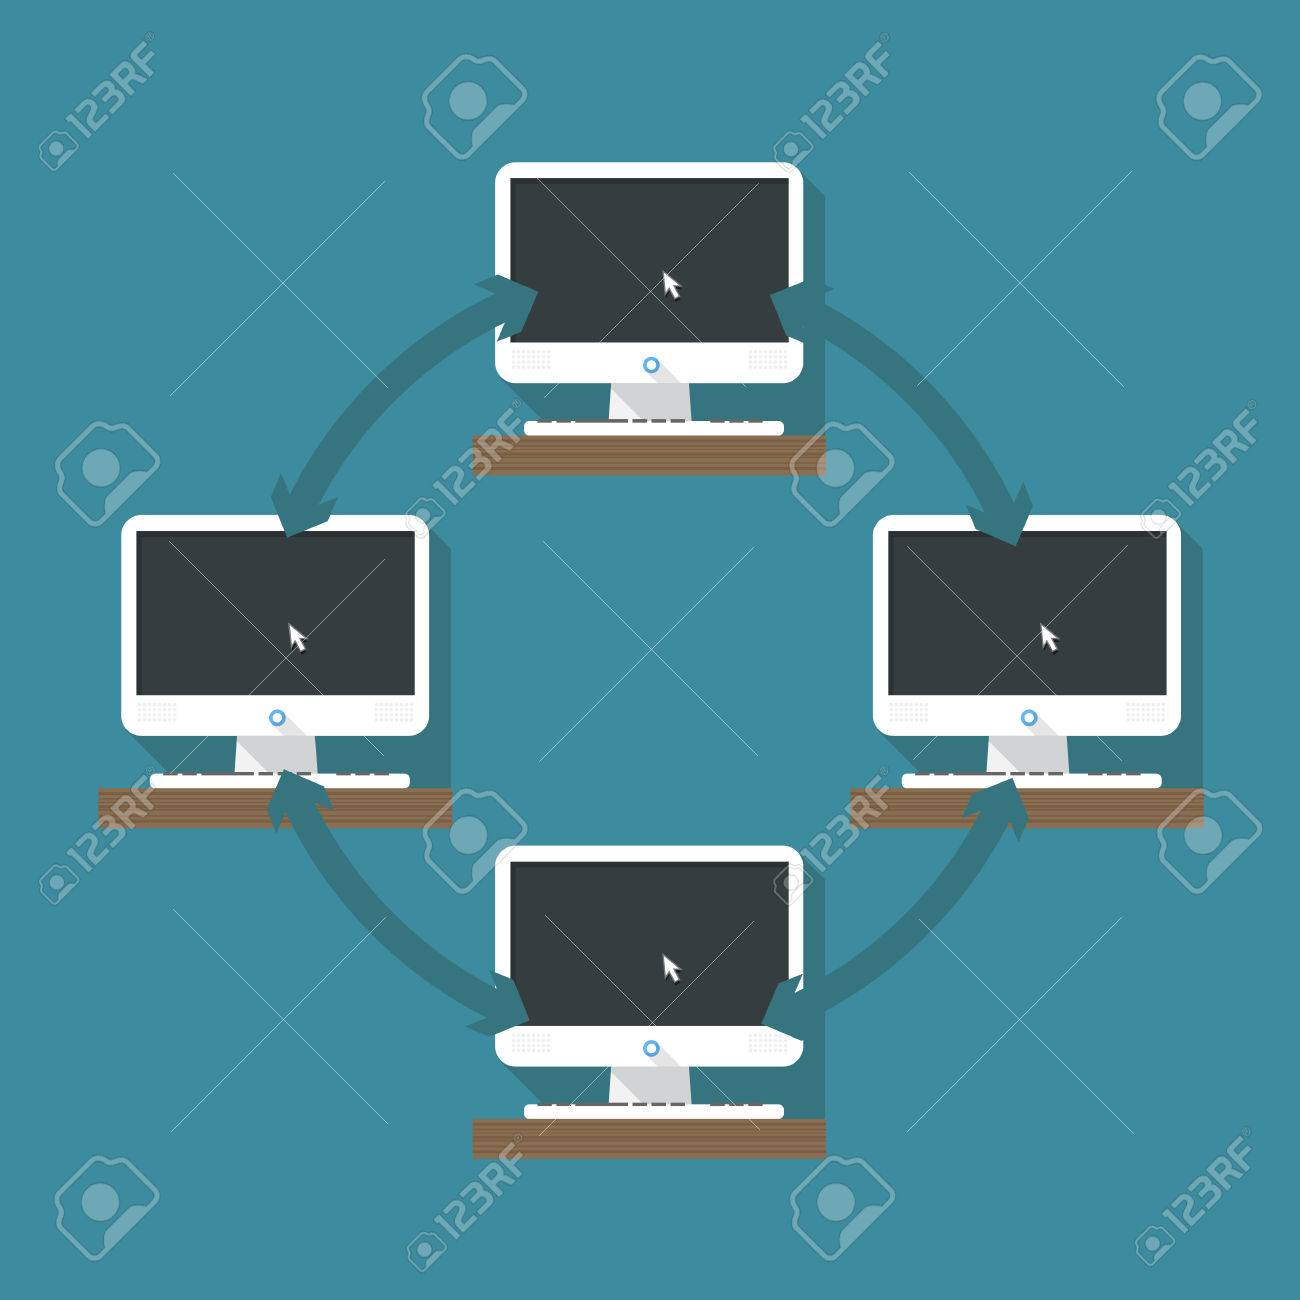 Abstract computer network scheme Stock Vector - 23909357